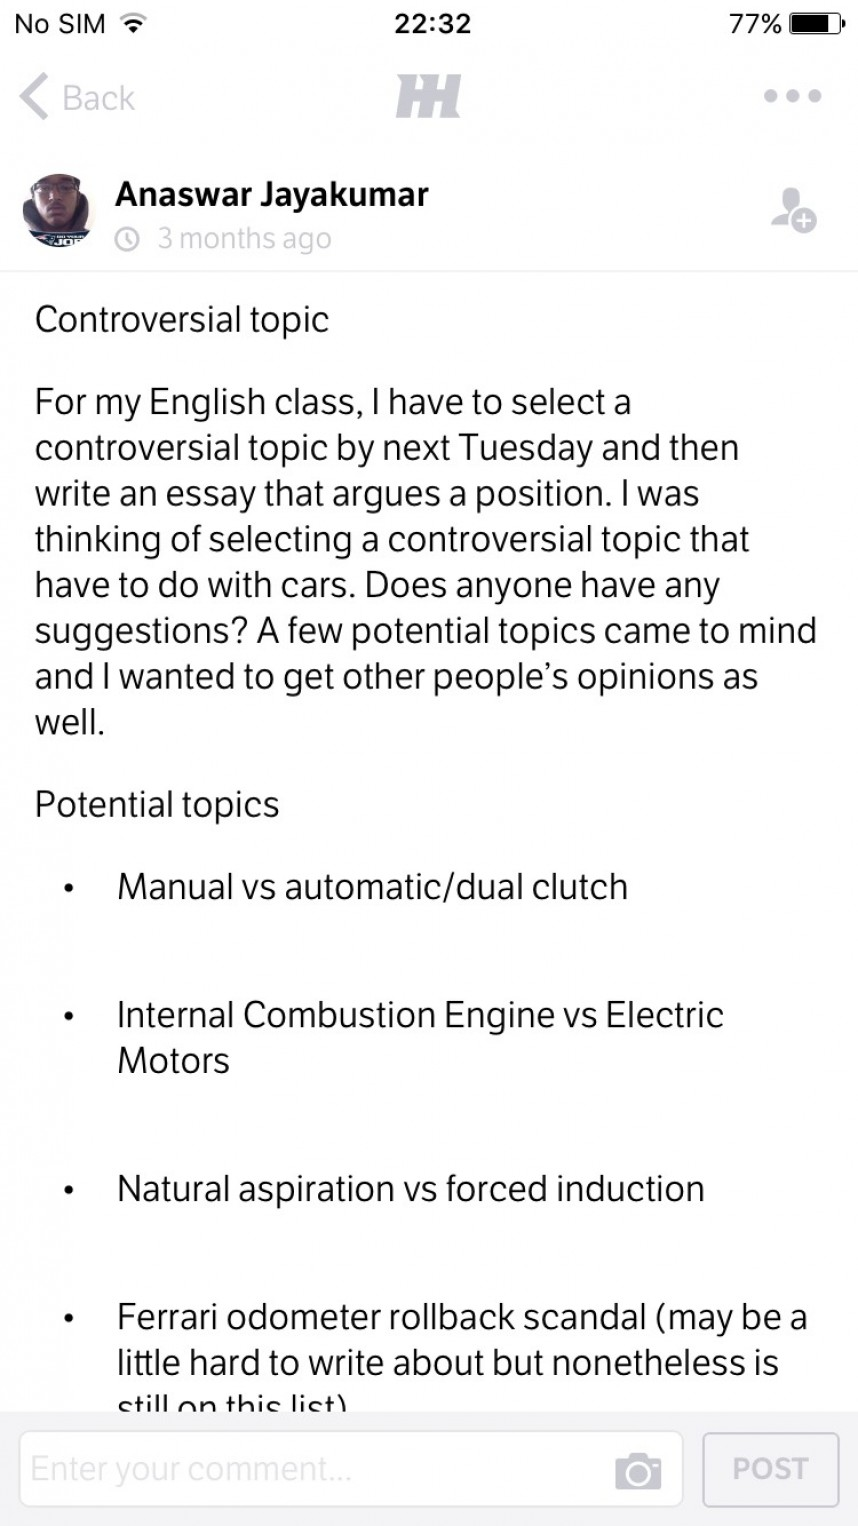 002 Research Paper Controversial Topic Essay Topics Example Outline Issue20 Middle School Phenomenal Questions Math For